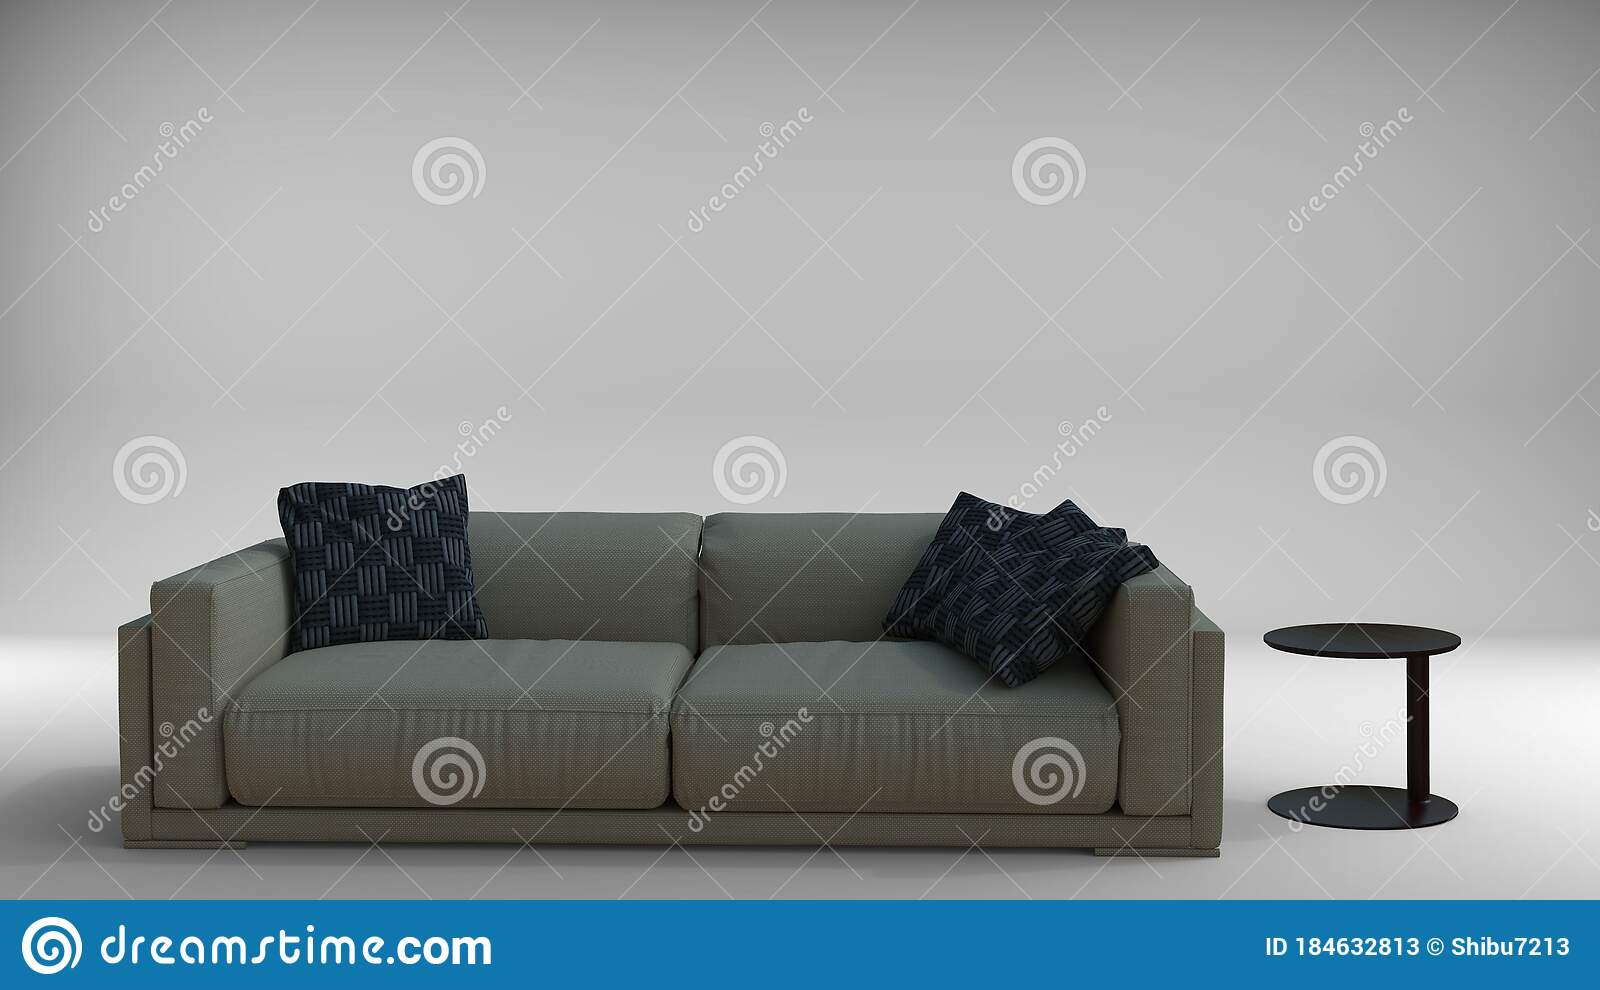 Picture of: 3d Render Of Couch Sofa Set With Cushions With Side Table Concept Furniture For Interior Decoration Stock Illustration Illustration Of Design Interior 184632813